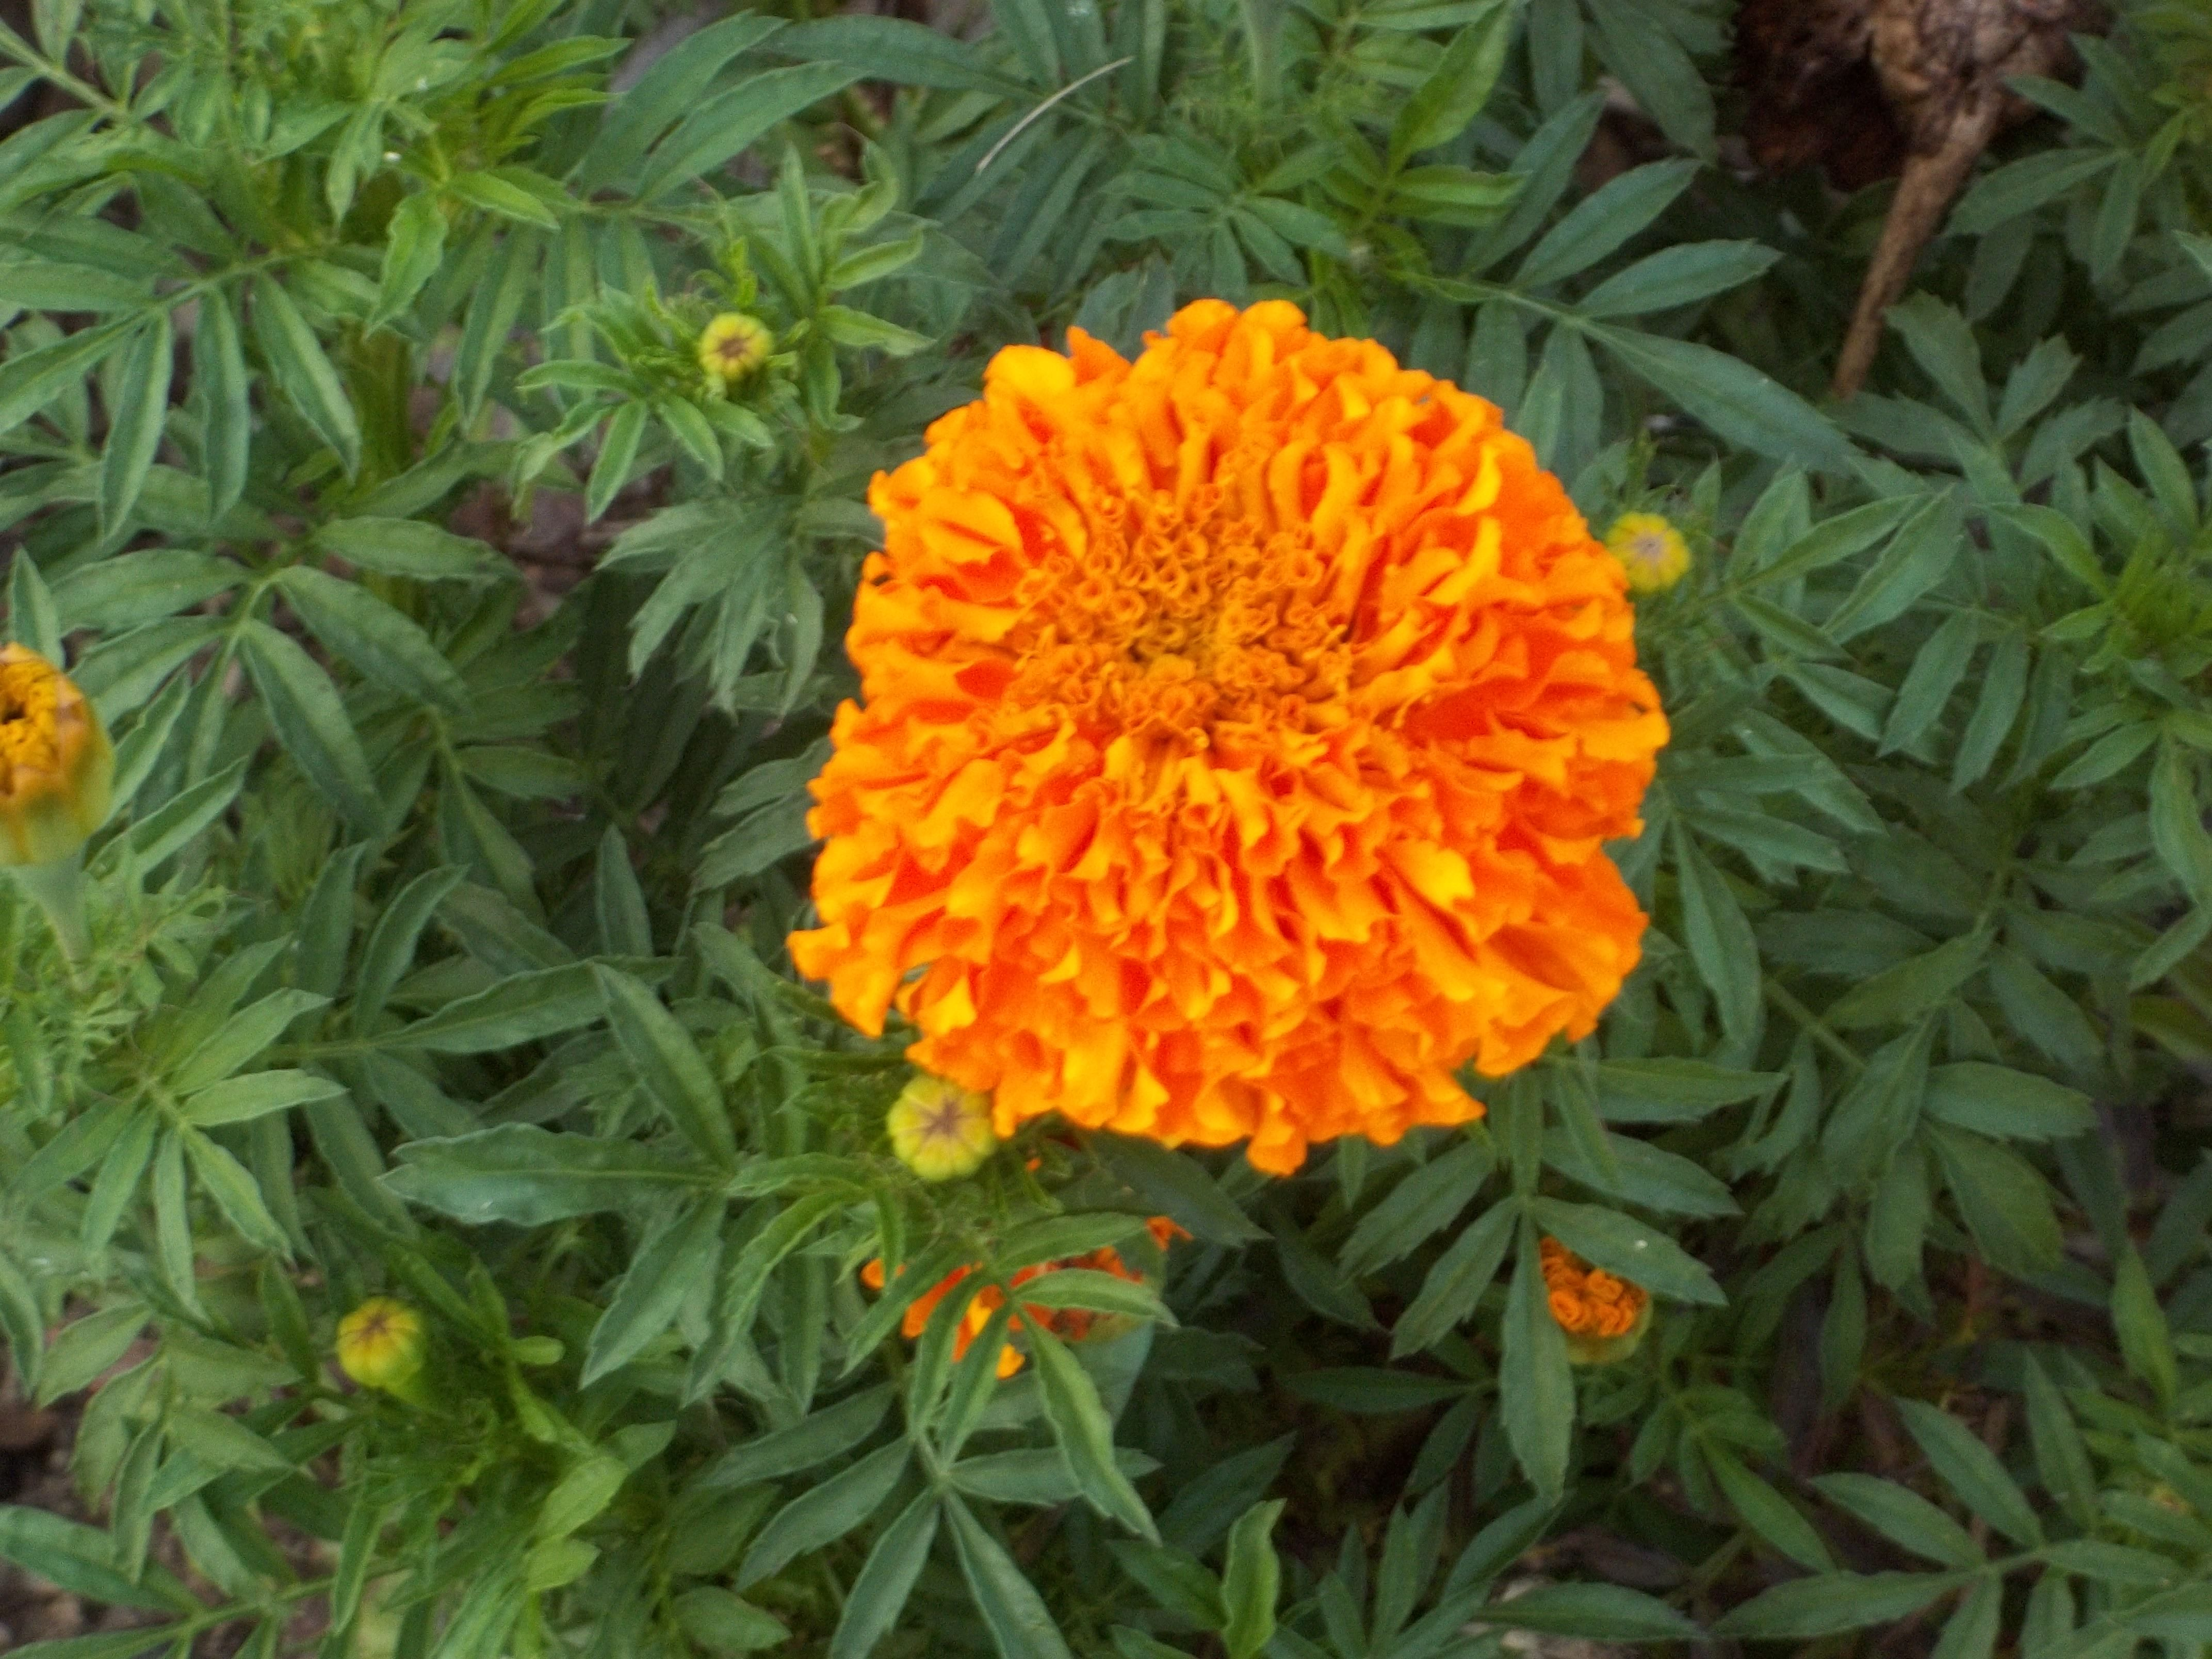 Marigold in the garden in front of the China Town office